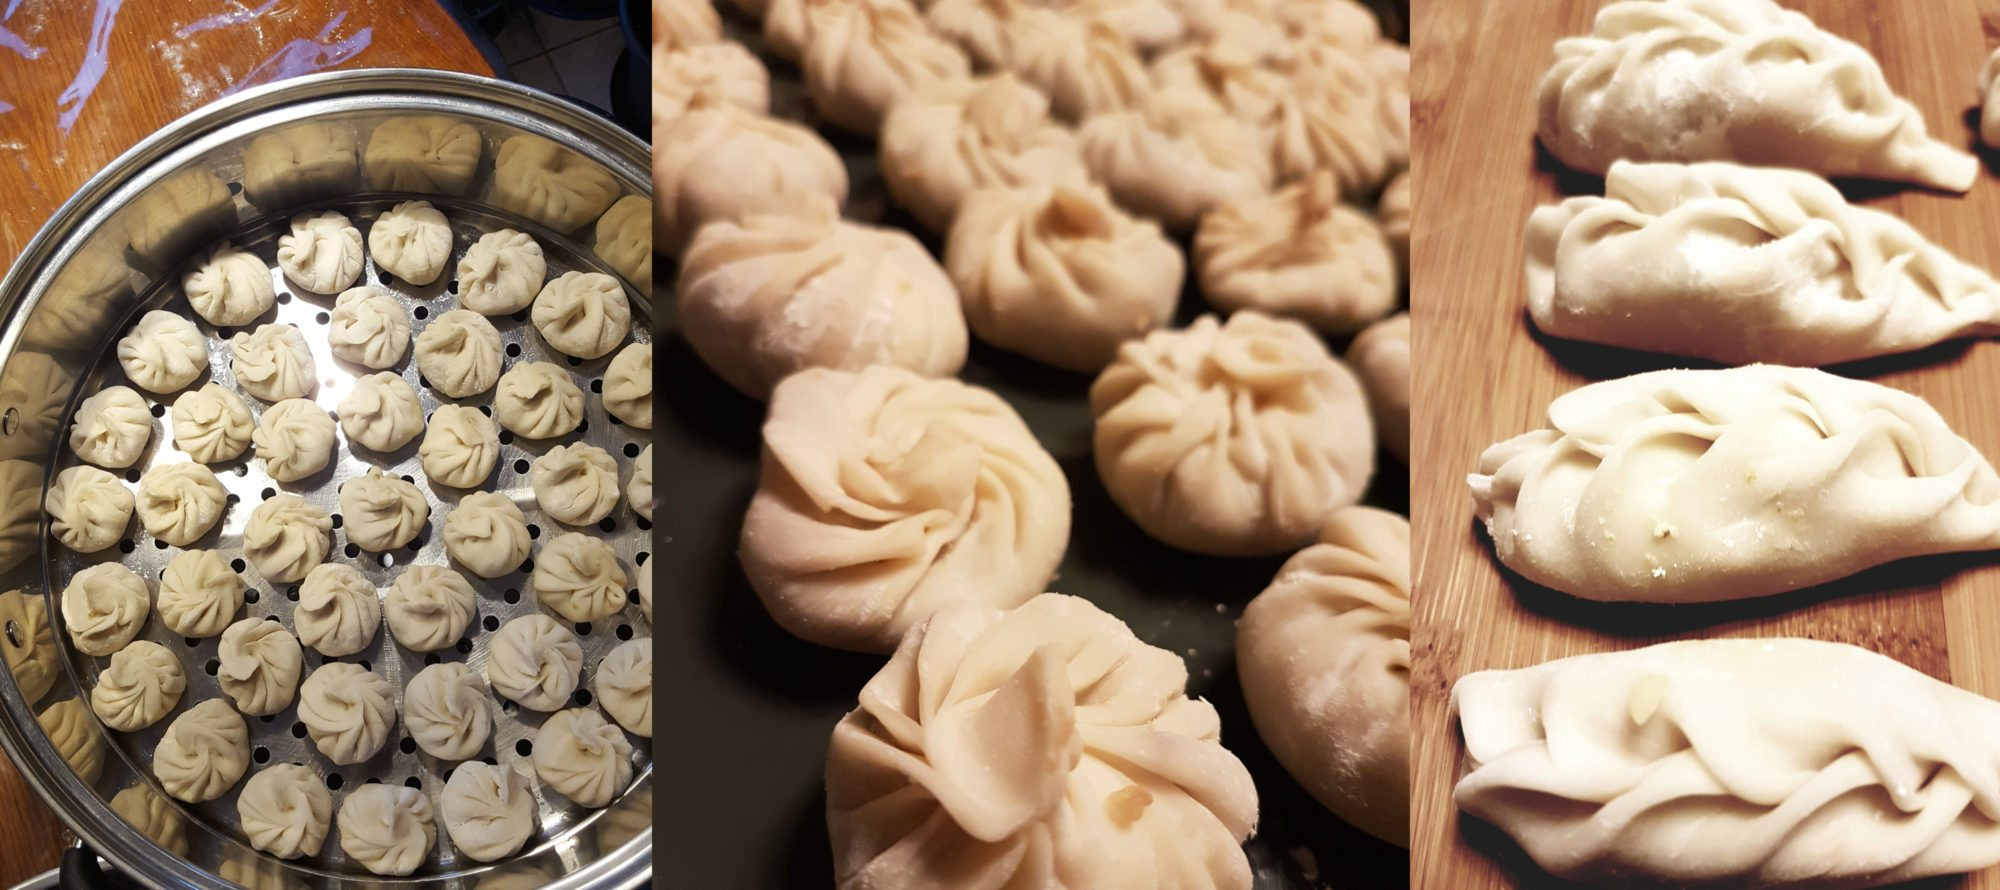 The Momo Spot comes to Good Eats this Saturday